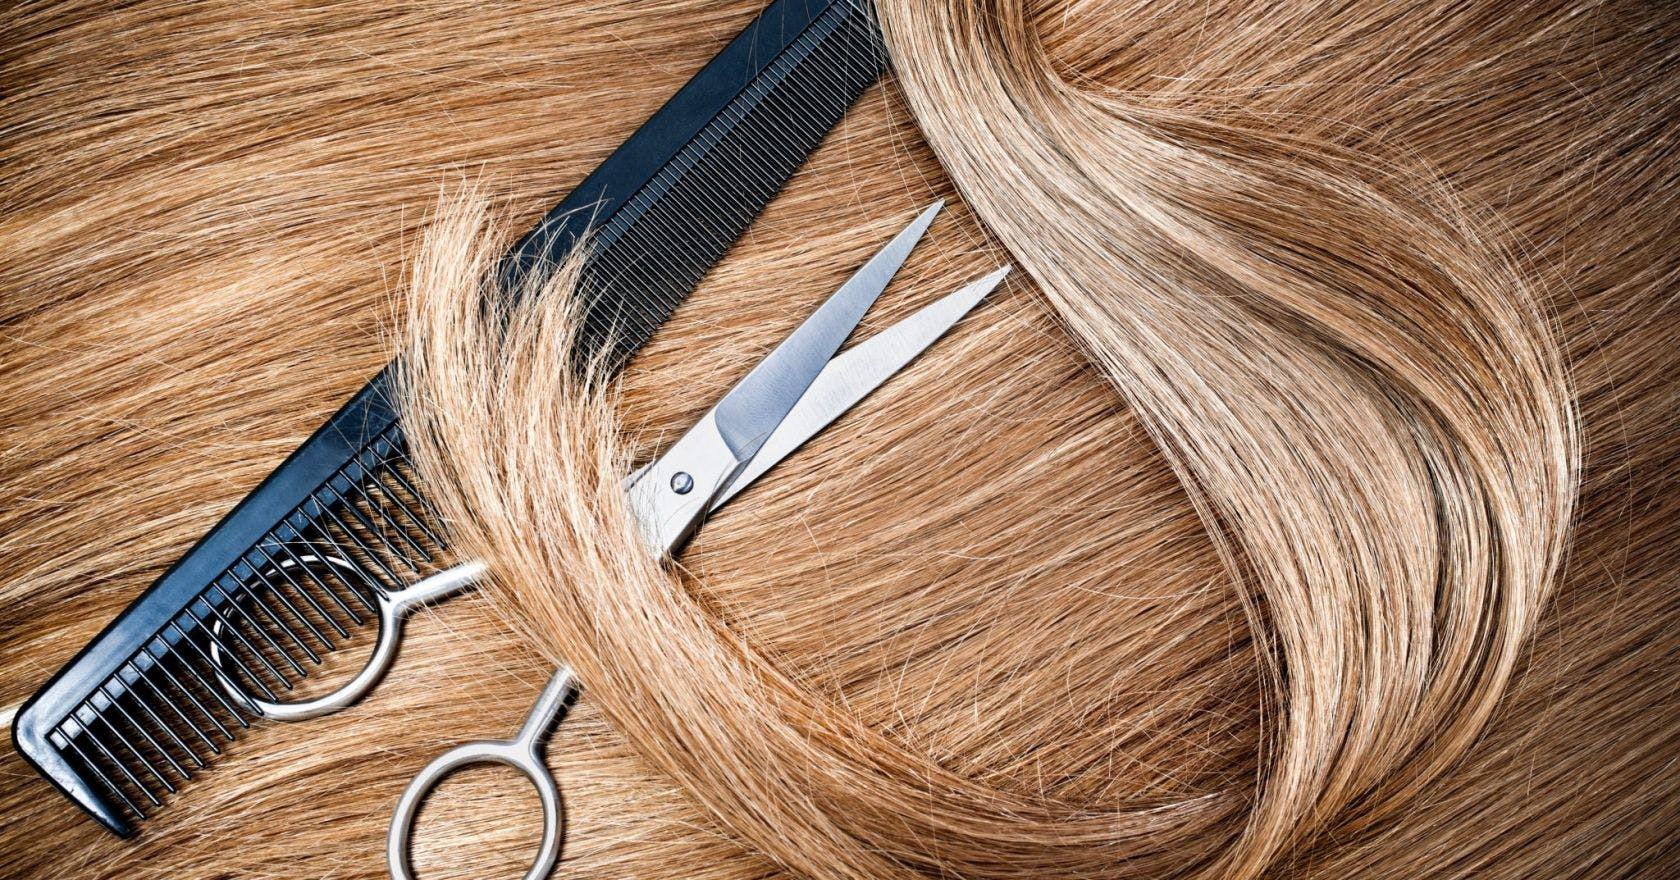 Struggling to get a hair appointment? Here's how to cut your own hair at home